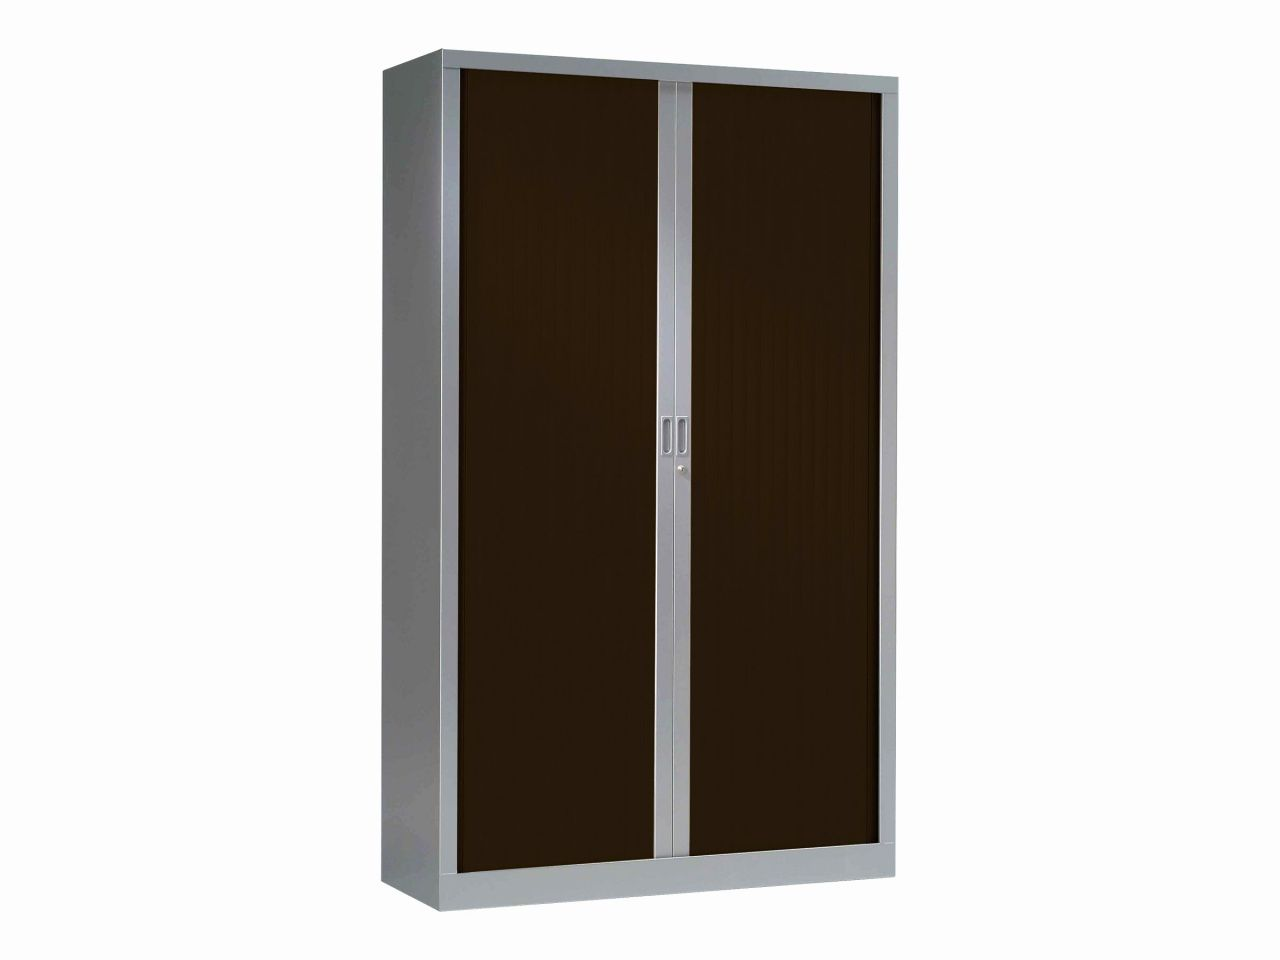 77 Le Bon Coin Bibliotheque Occasion Tall Cabinet Storage Commercial Interiors Room Divider